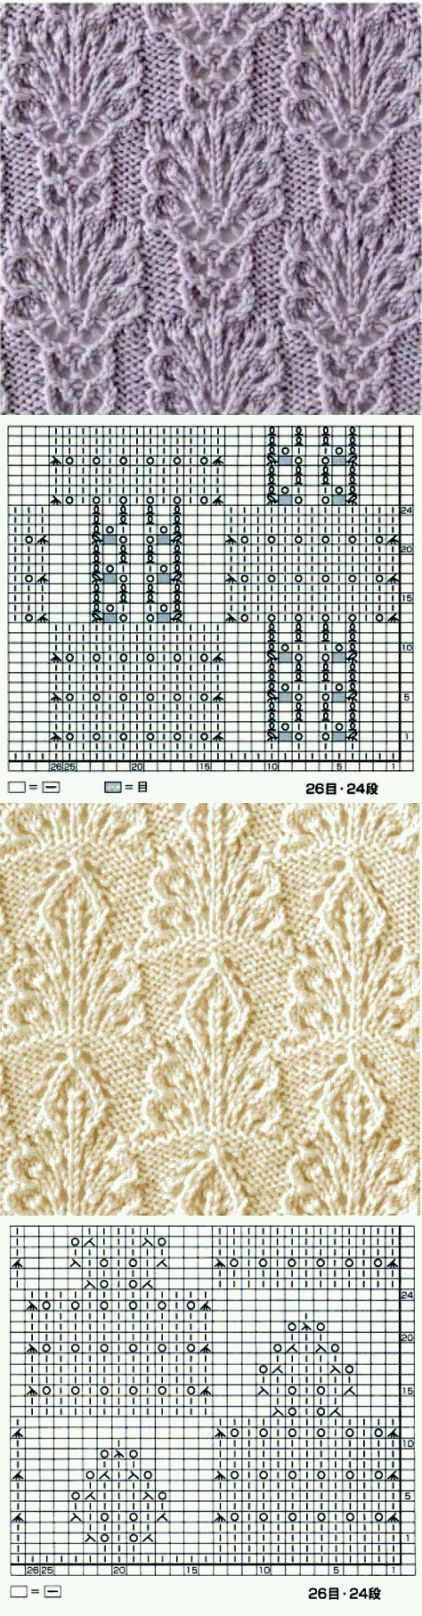 Pin By On Pinterest Stitch Crochet And